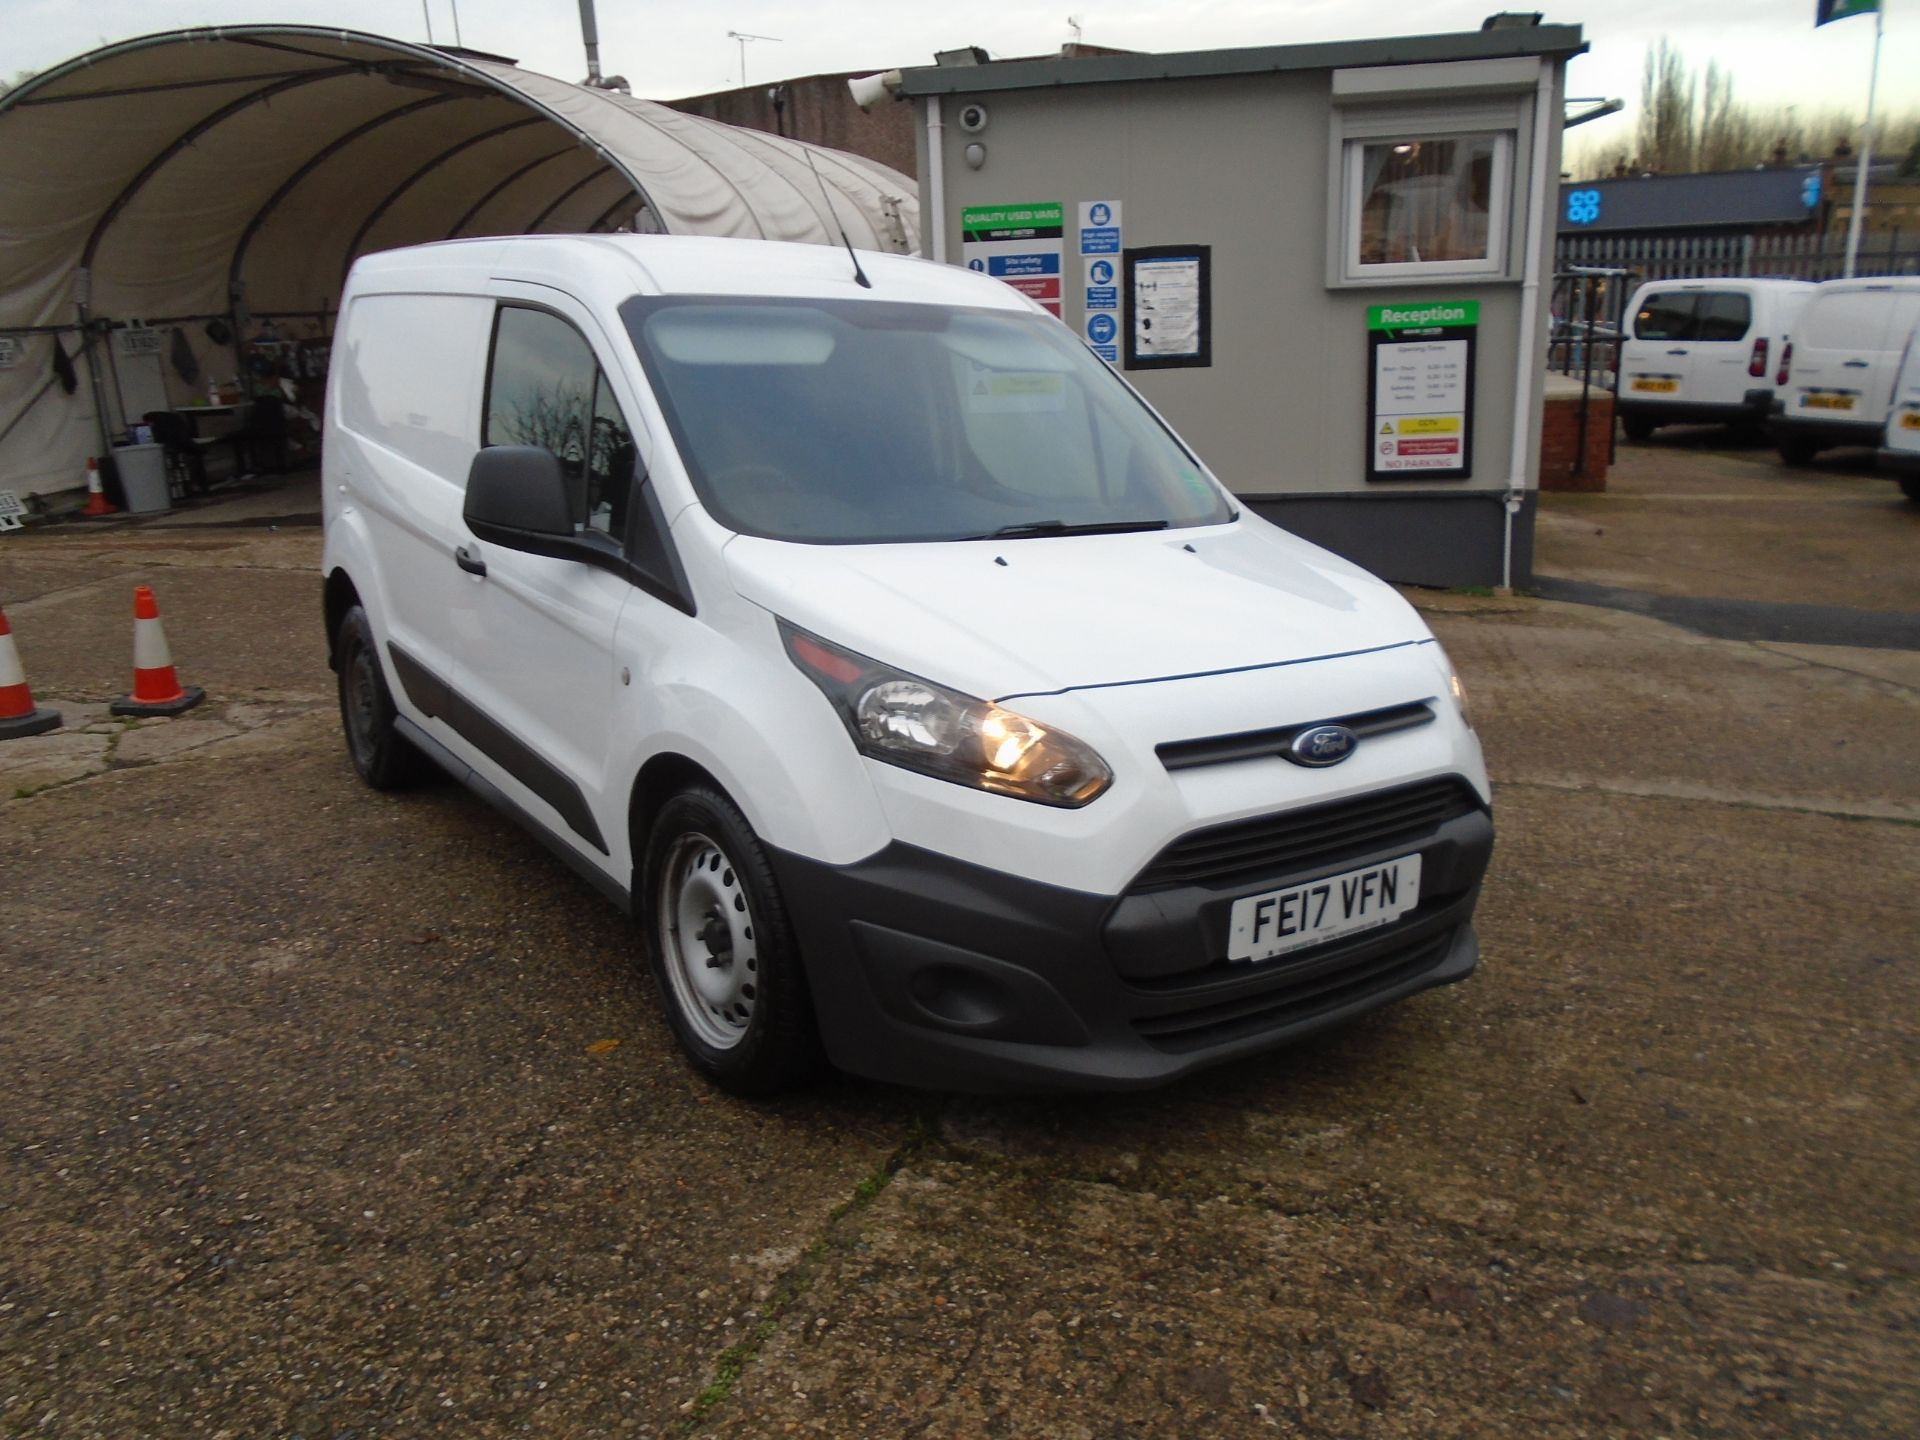 2017 Ford Transit Connect 1.5 Tdci 75Ps Van EURO 6 (FE17VFN)